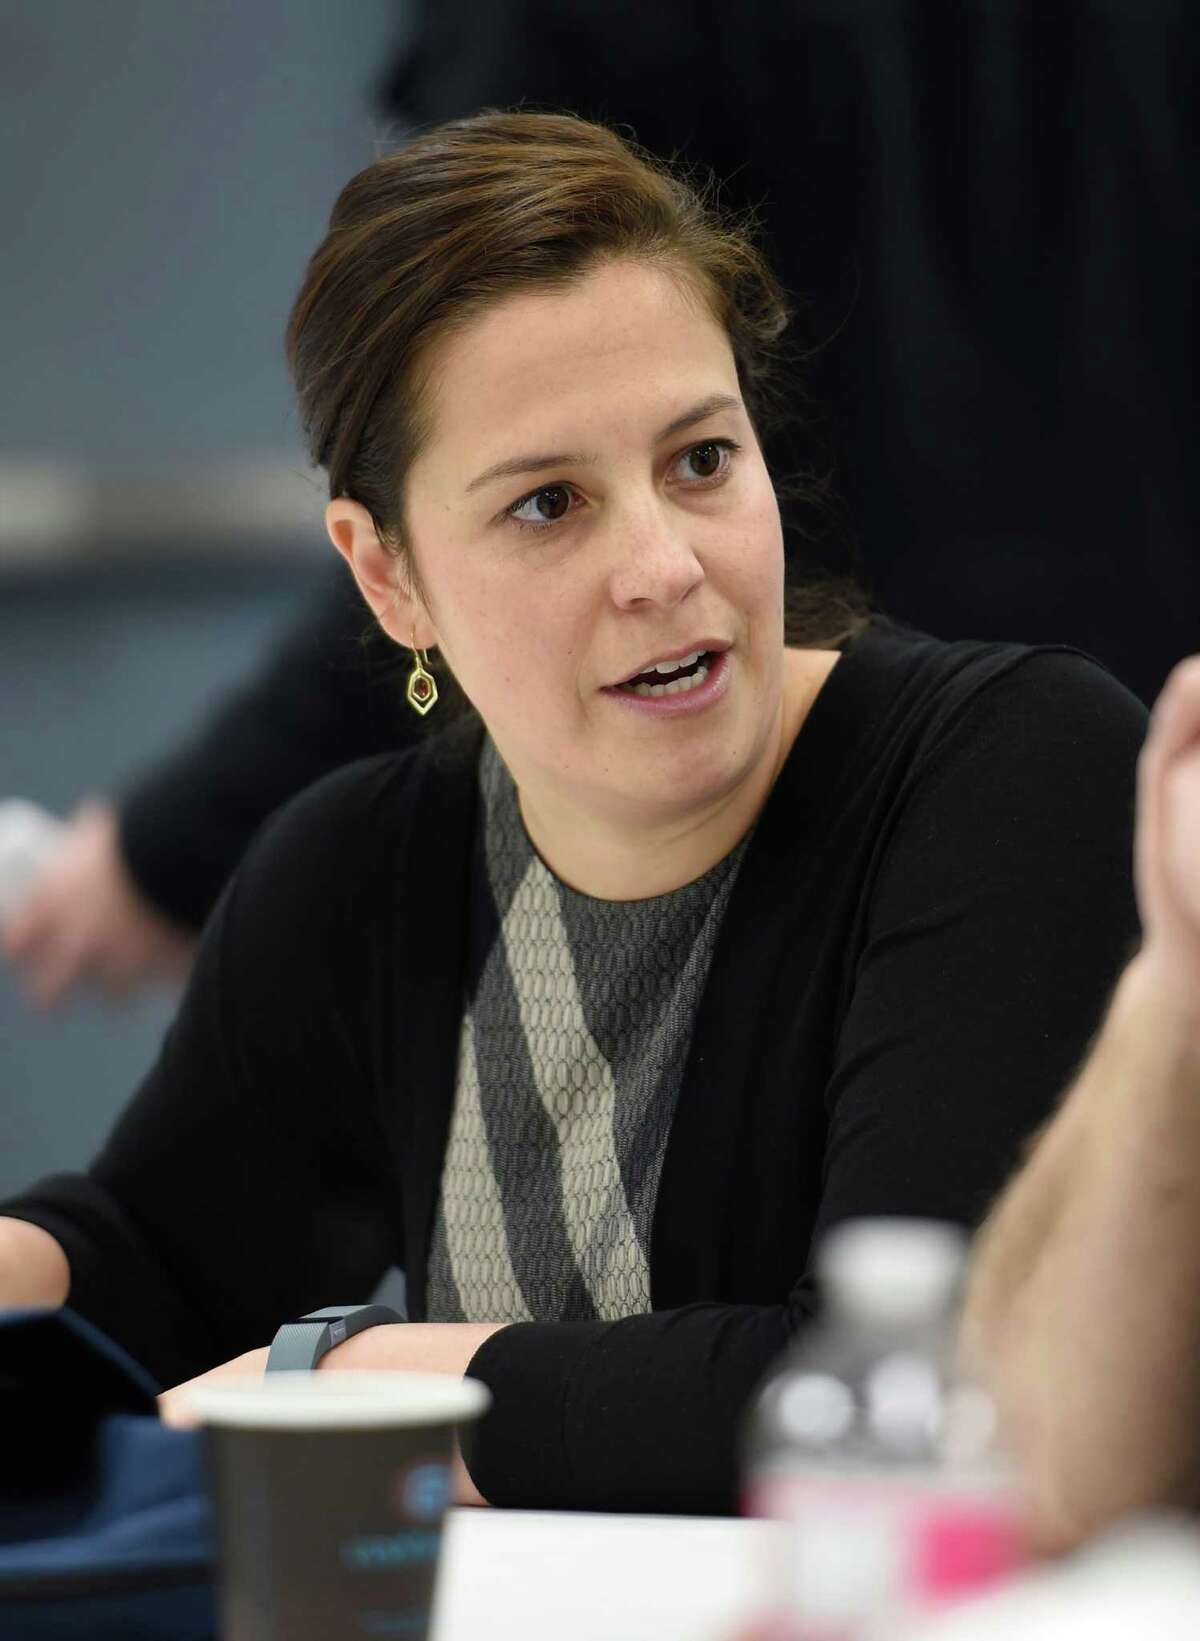 Congresswoman Elise Stefanik meets with workers before touring the SCA Tissue plant Wednesday, Feb. 17, 2016, in South Glens Falls, N.Y. (Skip Dickstein/Times Union)